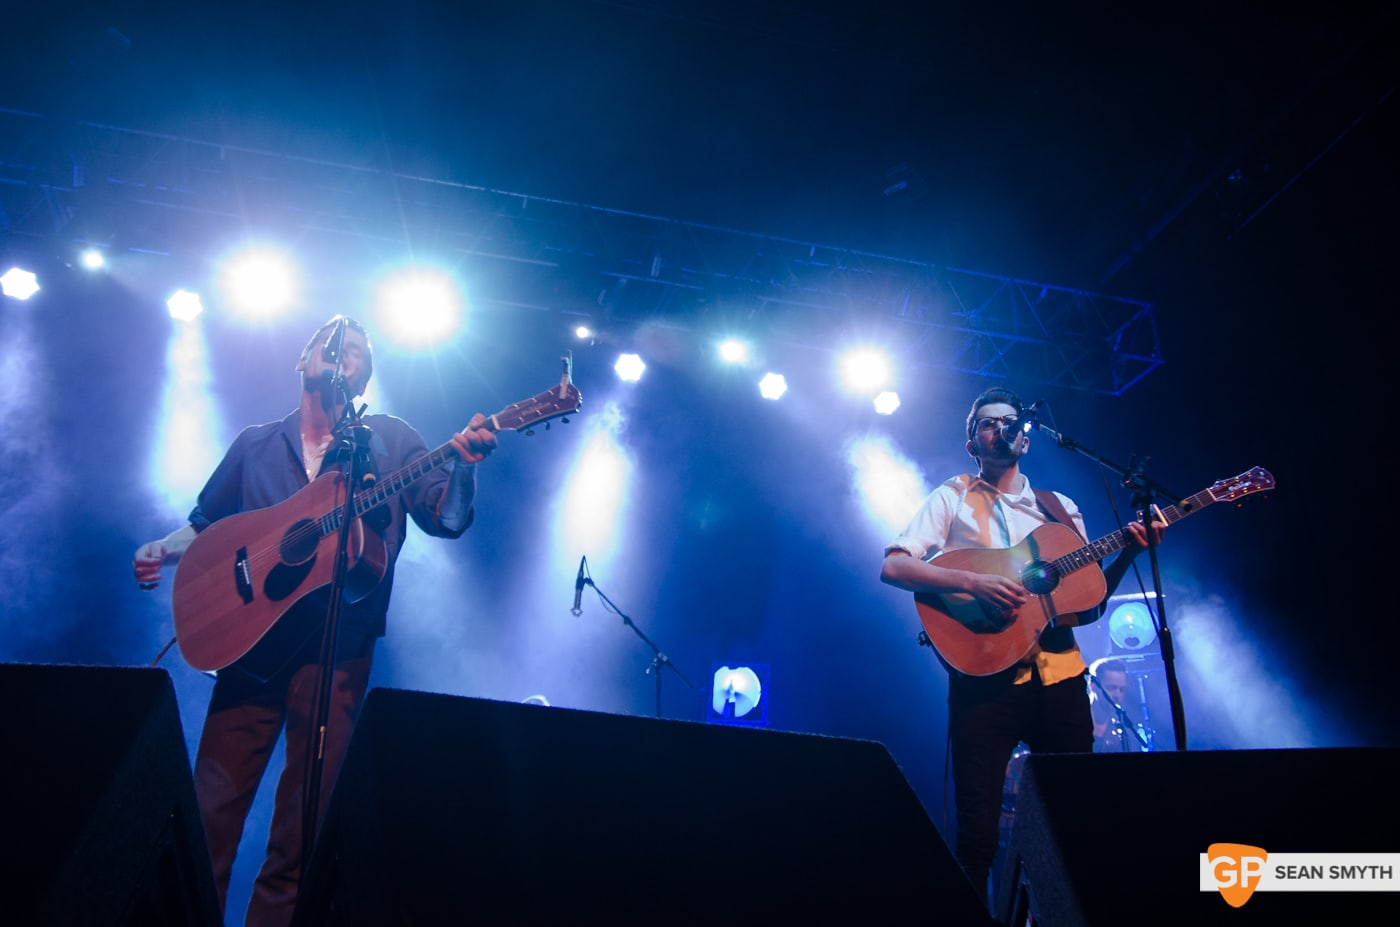 hudson-taylor-at-the-olympia-theatre-26-2-15-by-sean-smyth-16-of-26_16755691562_o